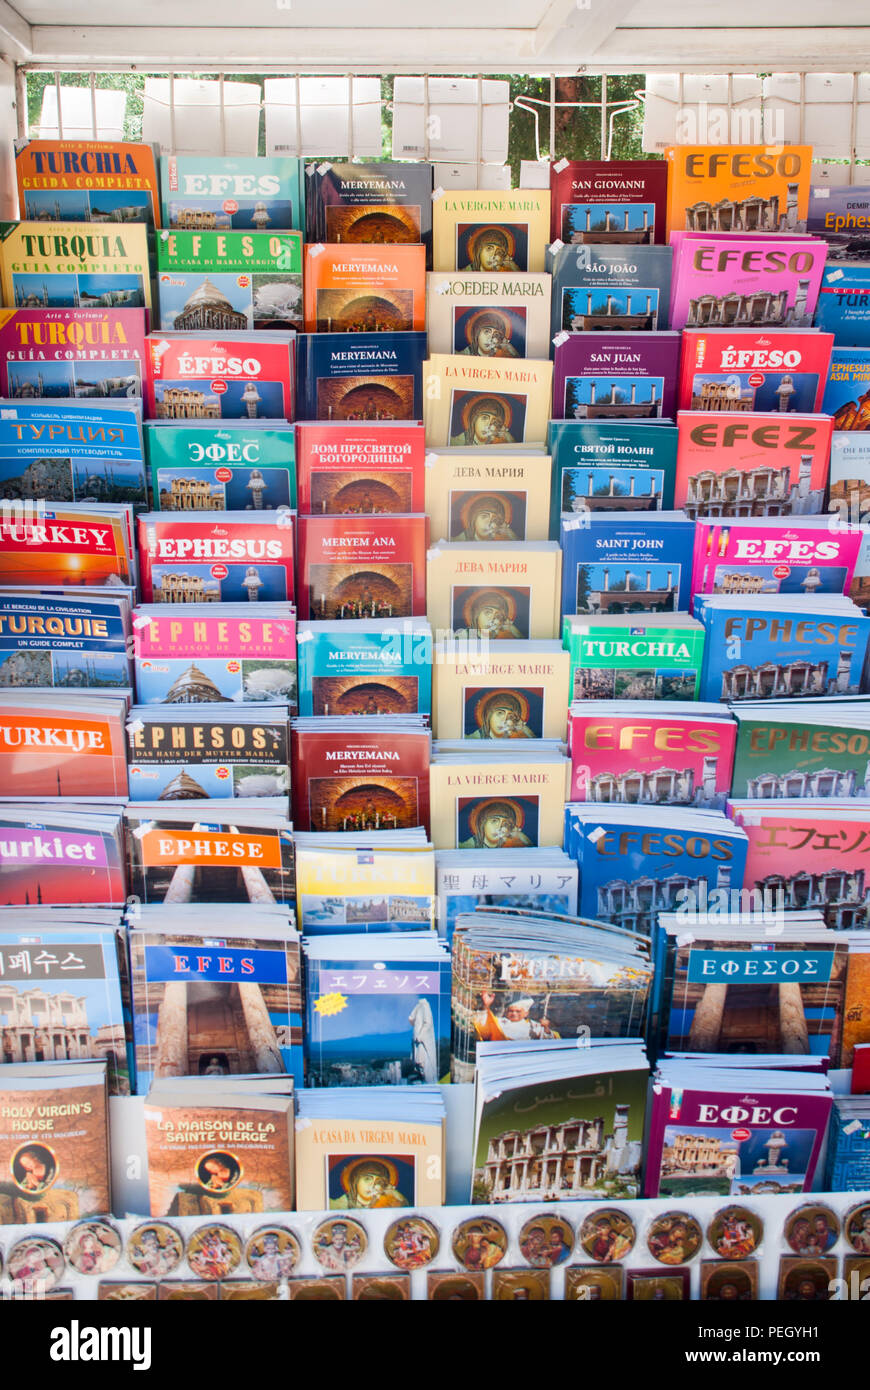 guide books in various languages - Stock Image